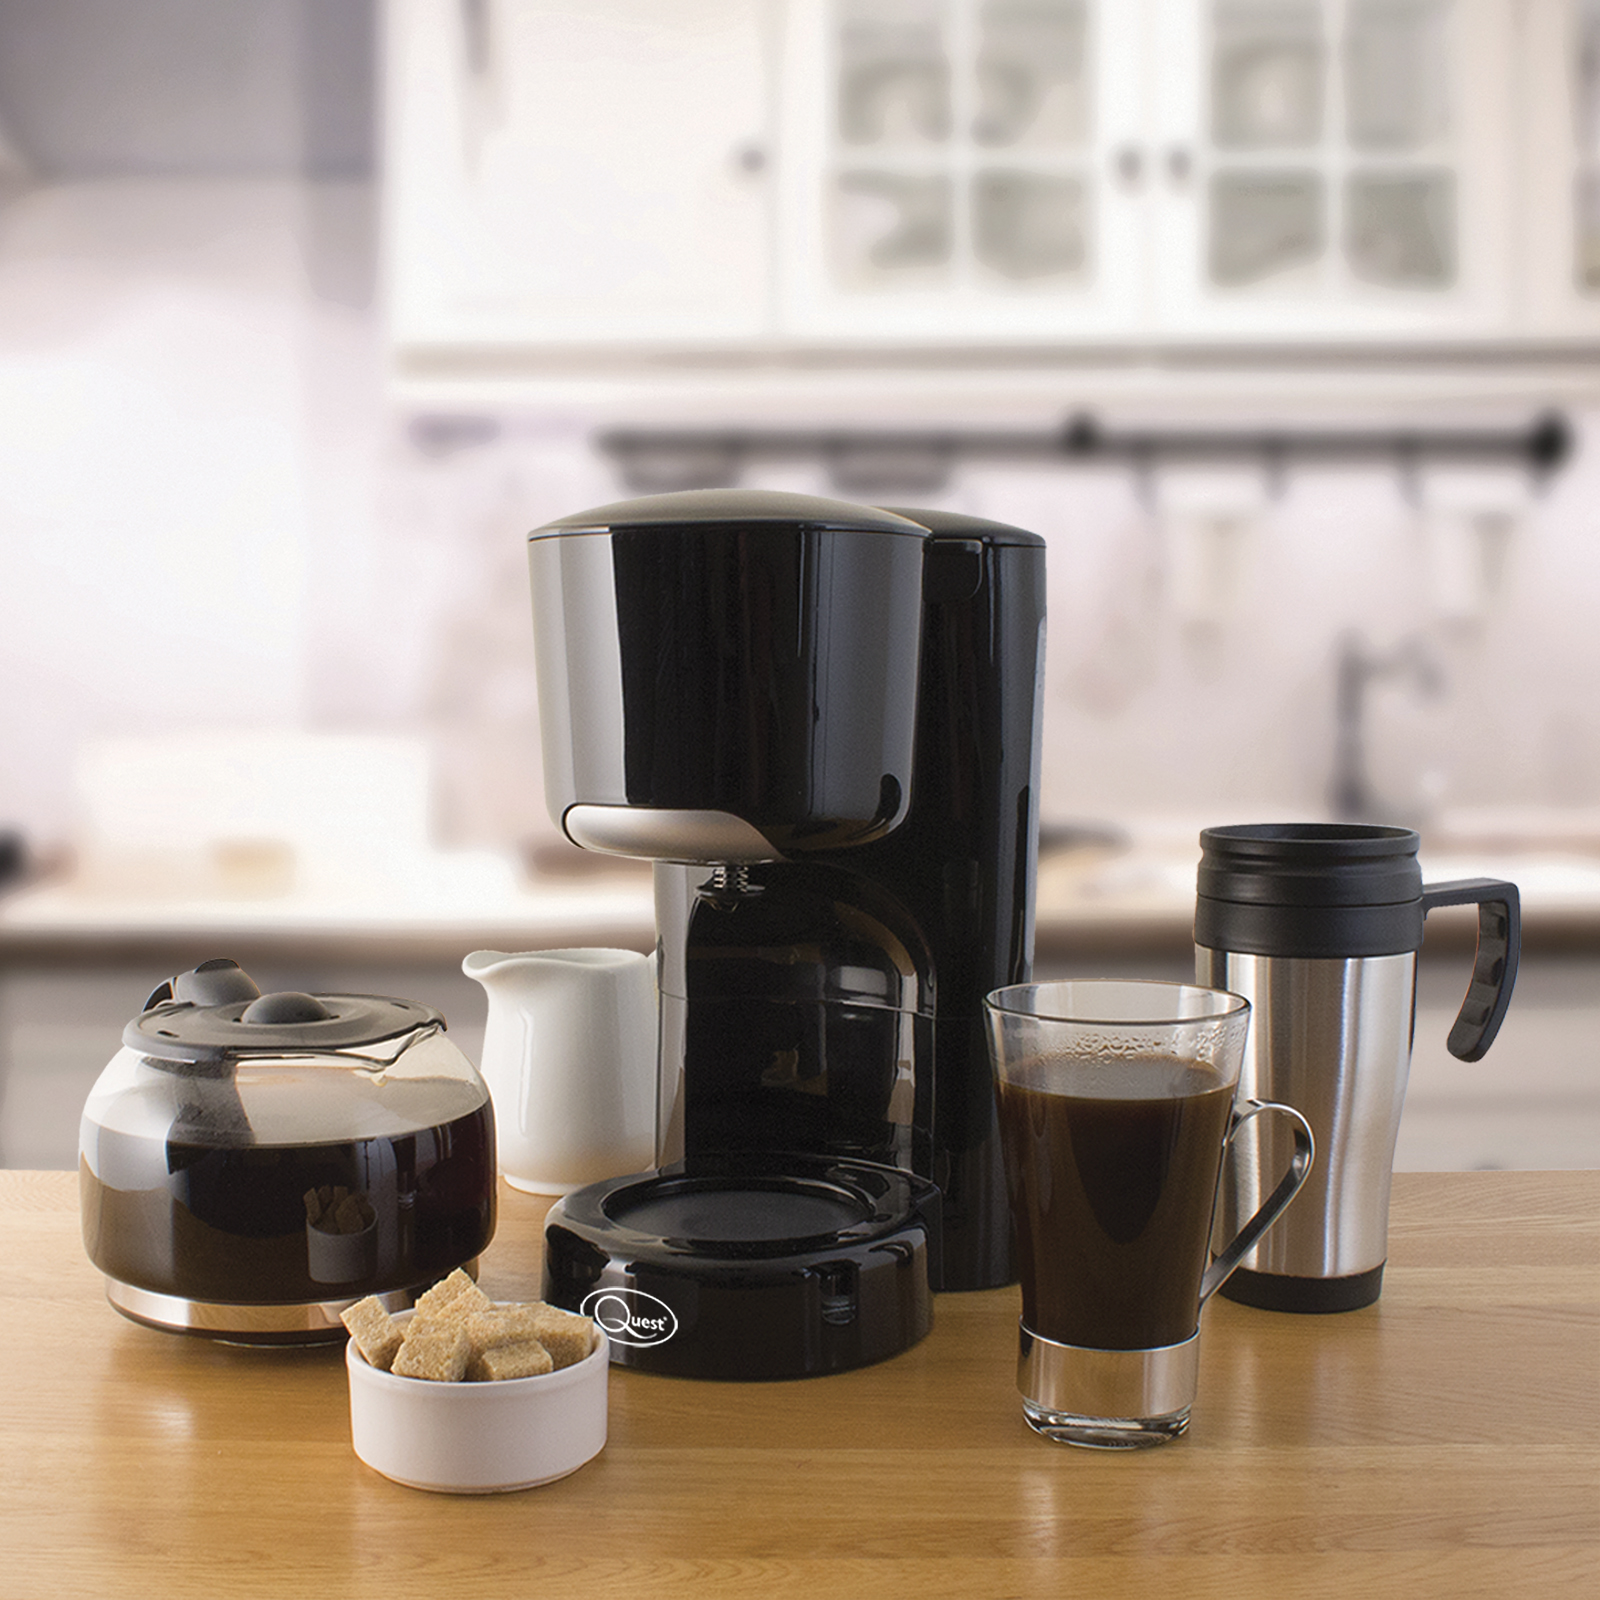 1.25L Coffee Maker - Freshly brewed perfect tasting coffee! This Quest 1.25L capacity gabs carafe holds approximately 10-12 cups of coffee which will remain warm for up to 40 minutes.